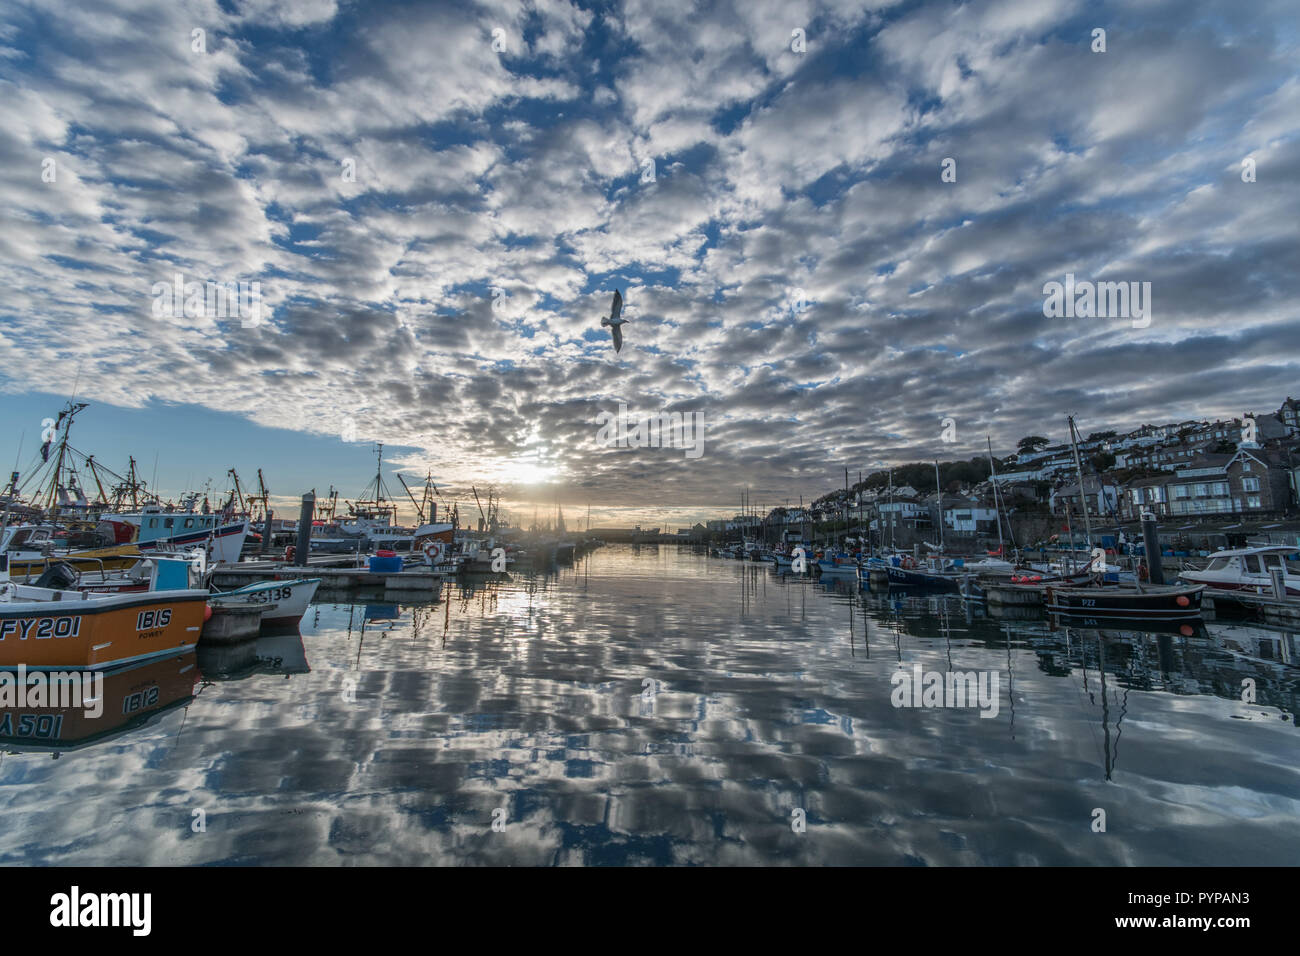 Newlyn, Cornwall, UK. 30th Oct, 2018. UK Weather. Clouds reflecting in the calm water at Newlyn harbour in the early morning. Credit: Simon Maycock/Alamy Live News - Stock Image